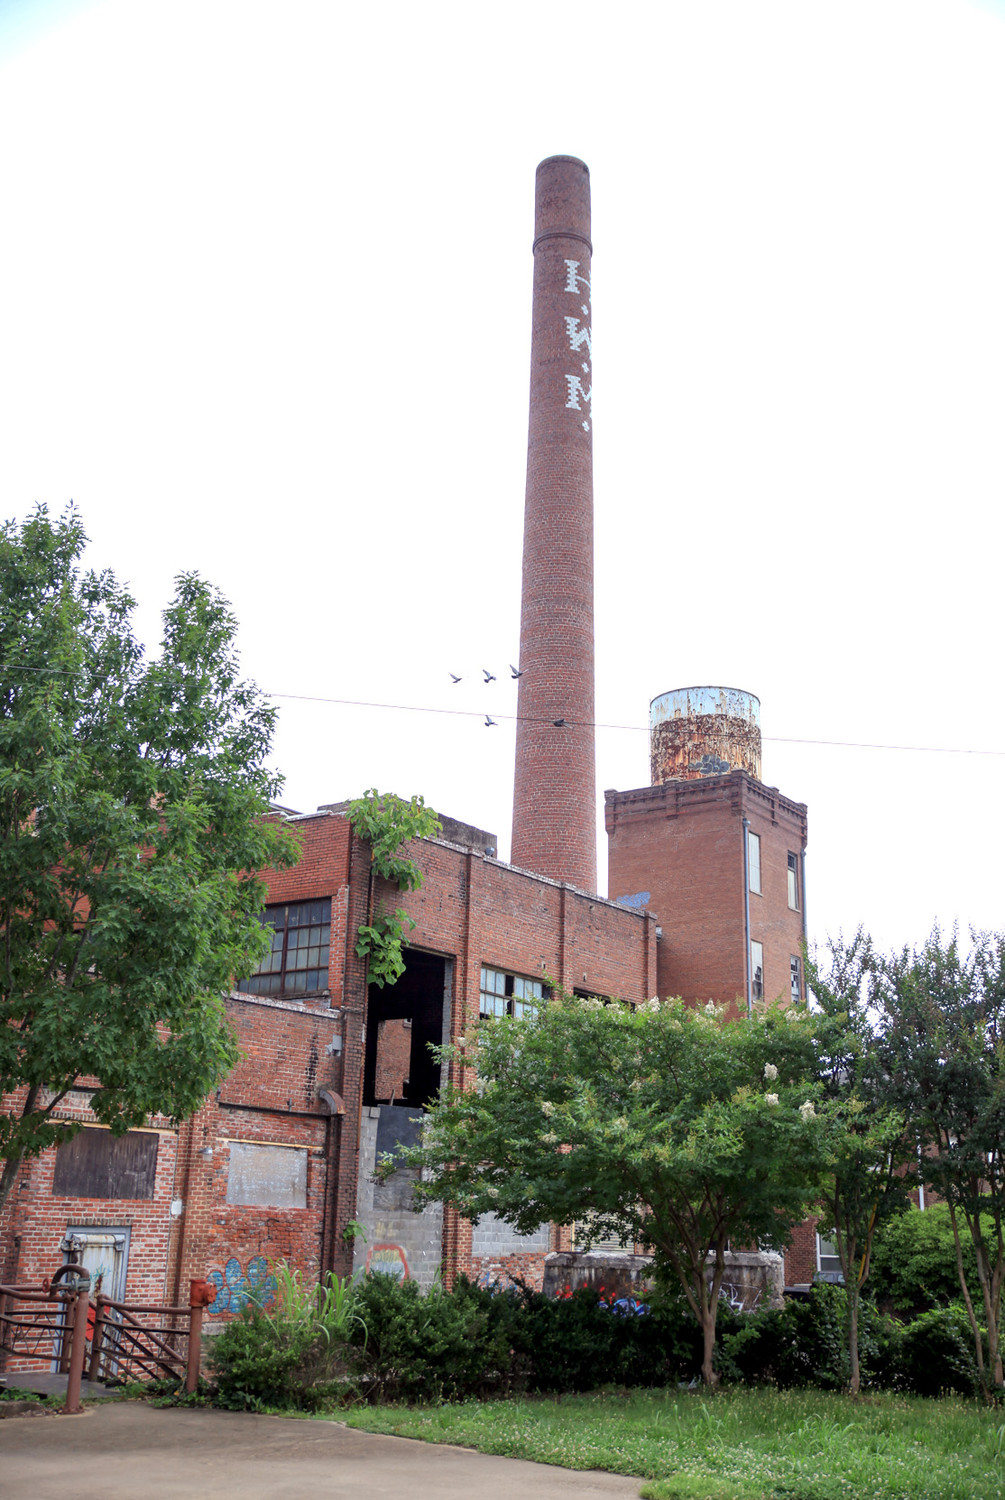 THE OLD SMOKESTACK towers high over the Old Woolen Mill in South Cleveland. Several retail shops are located in the historic structure, and improvements and expansion continues. Some office space is being renovated within the old building, and it is destined for a new roof in May's building permits.